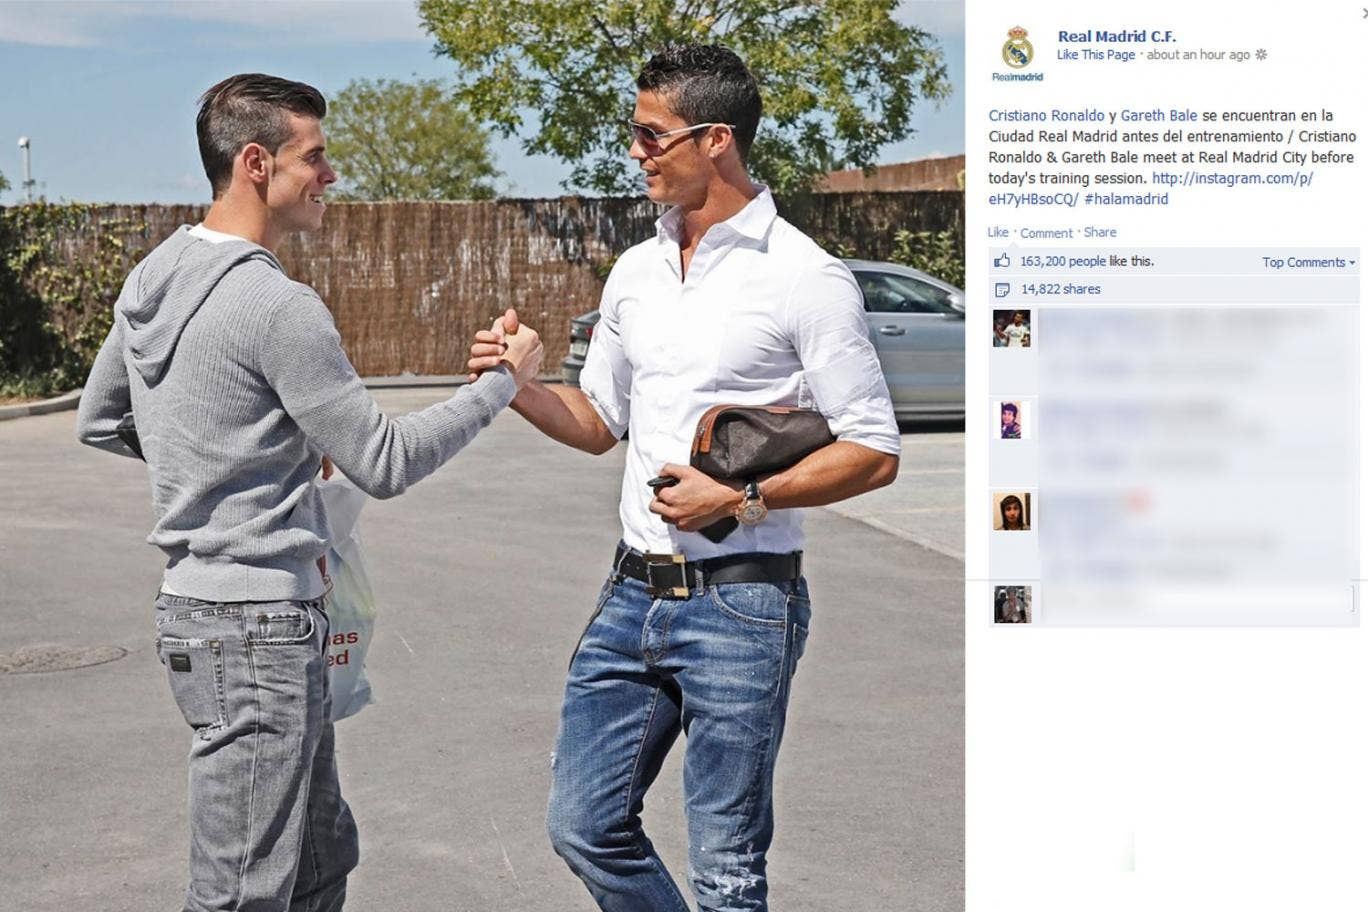 Gareth Bale and Cristiano Ronaldo pictured meeting at Real Madrid